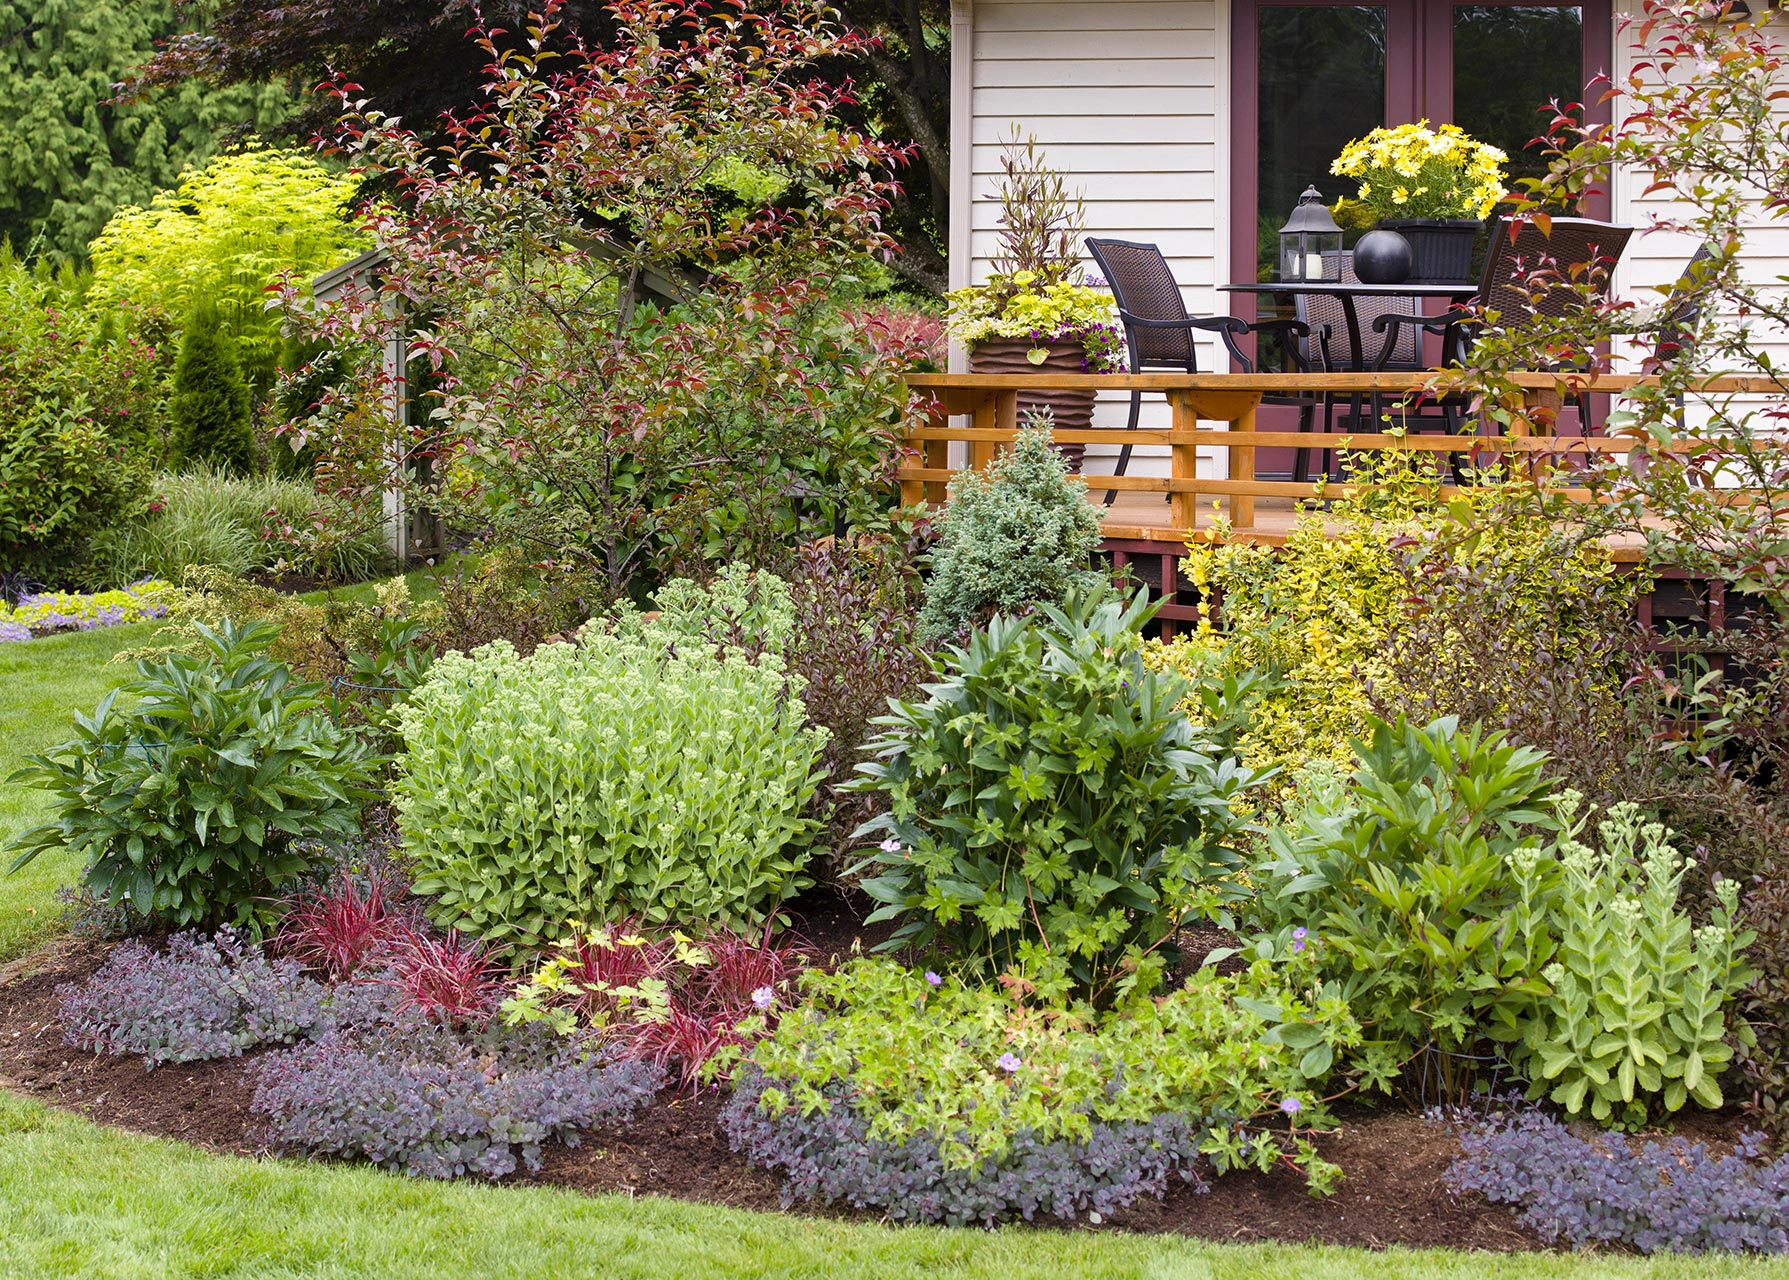 Curb Appeal in a Weekend: Create a New Planting Bed